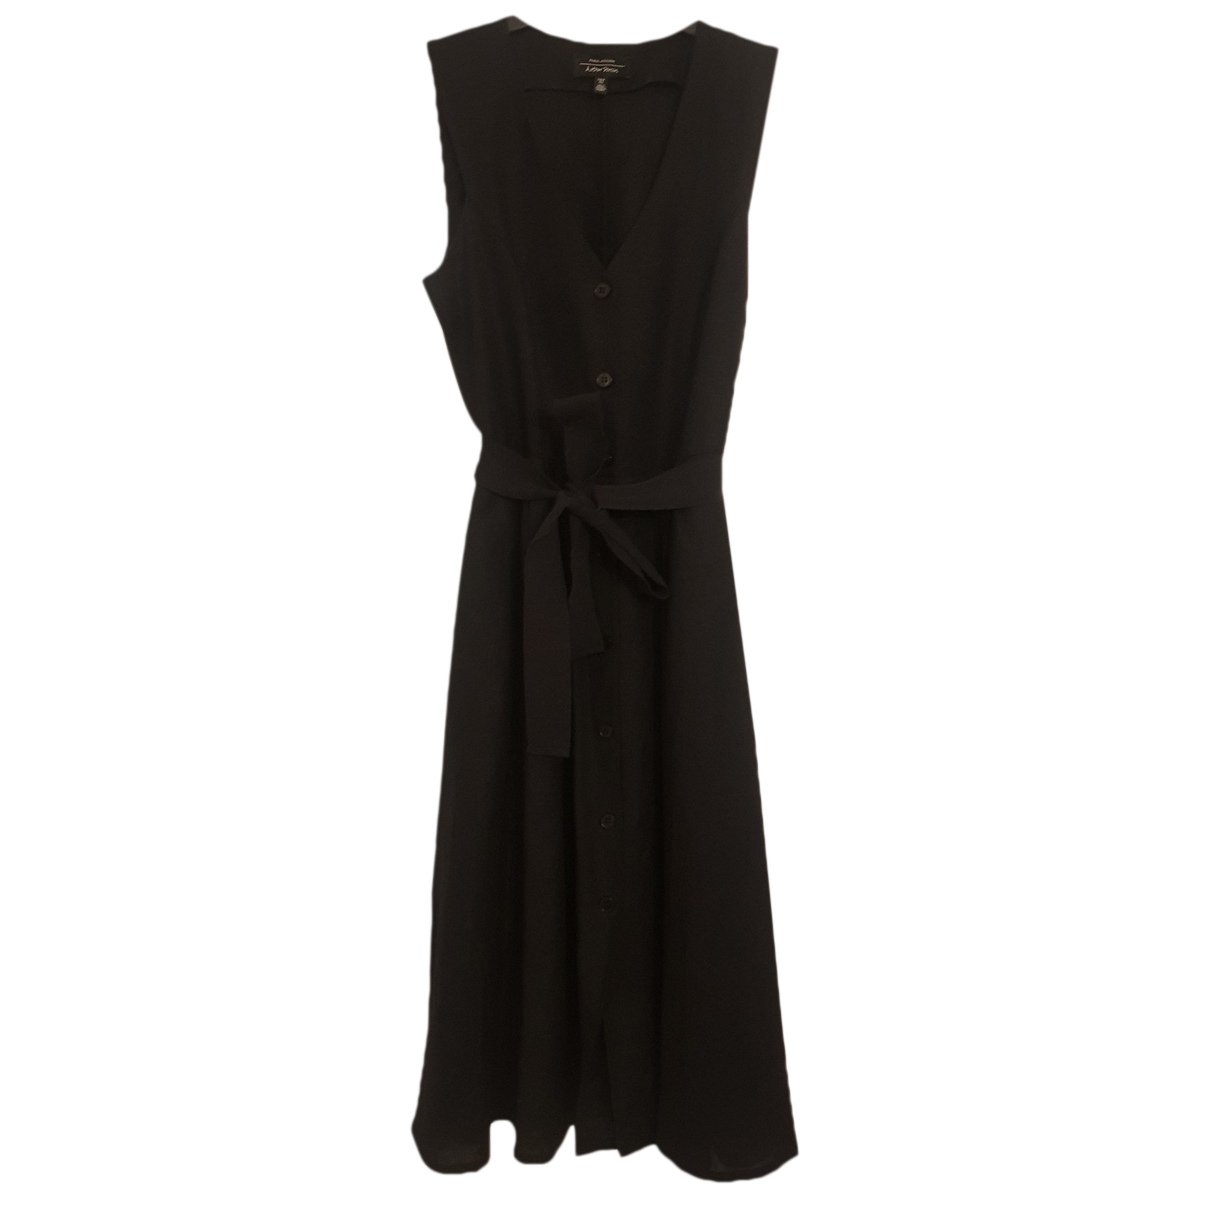 & Other Stories - Robe   pour femme en lin - noir